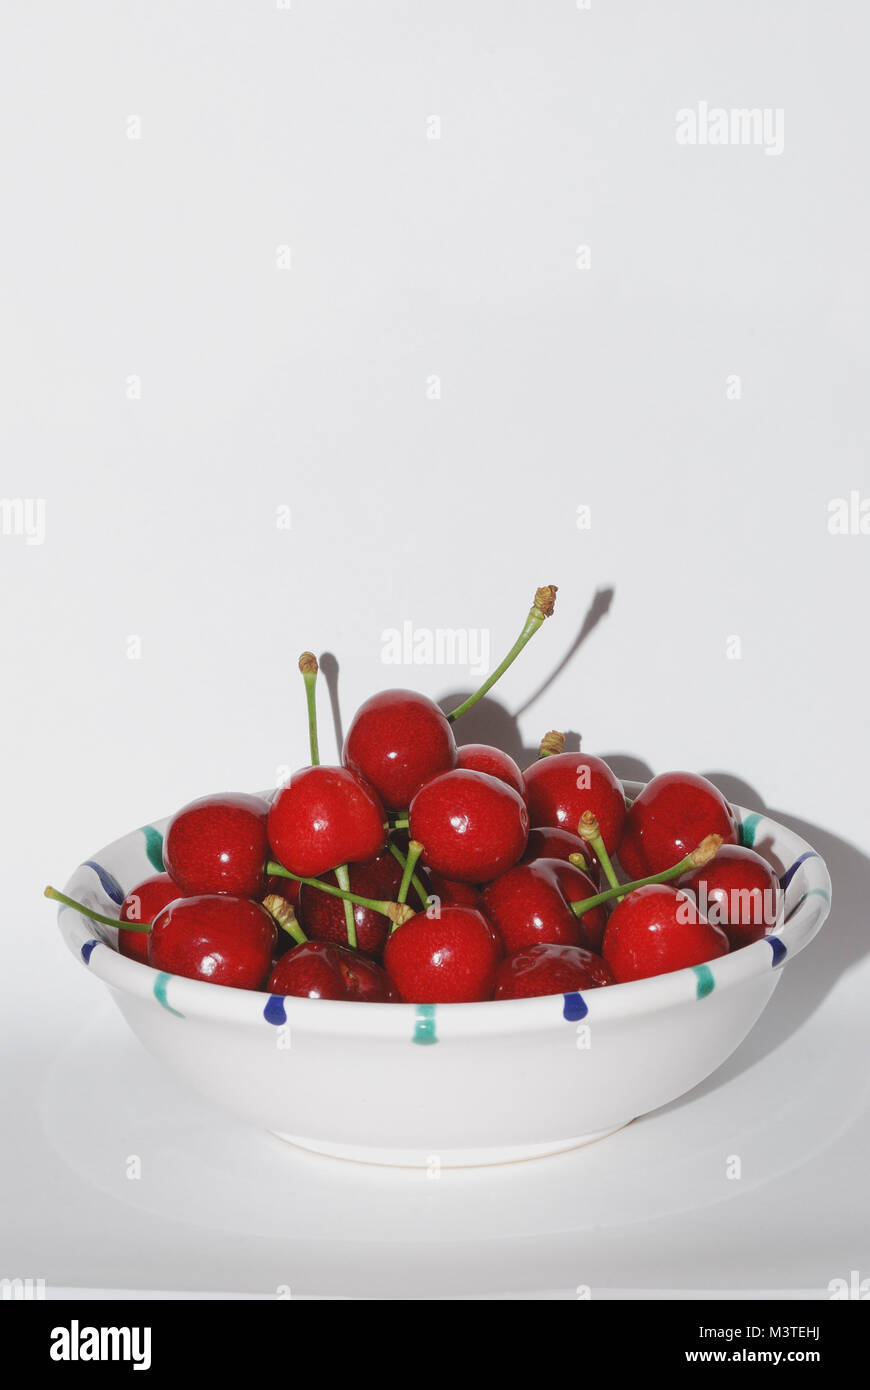 hochformat many juicy red cherries in a bowl - Stock Image